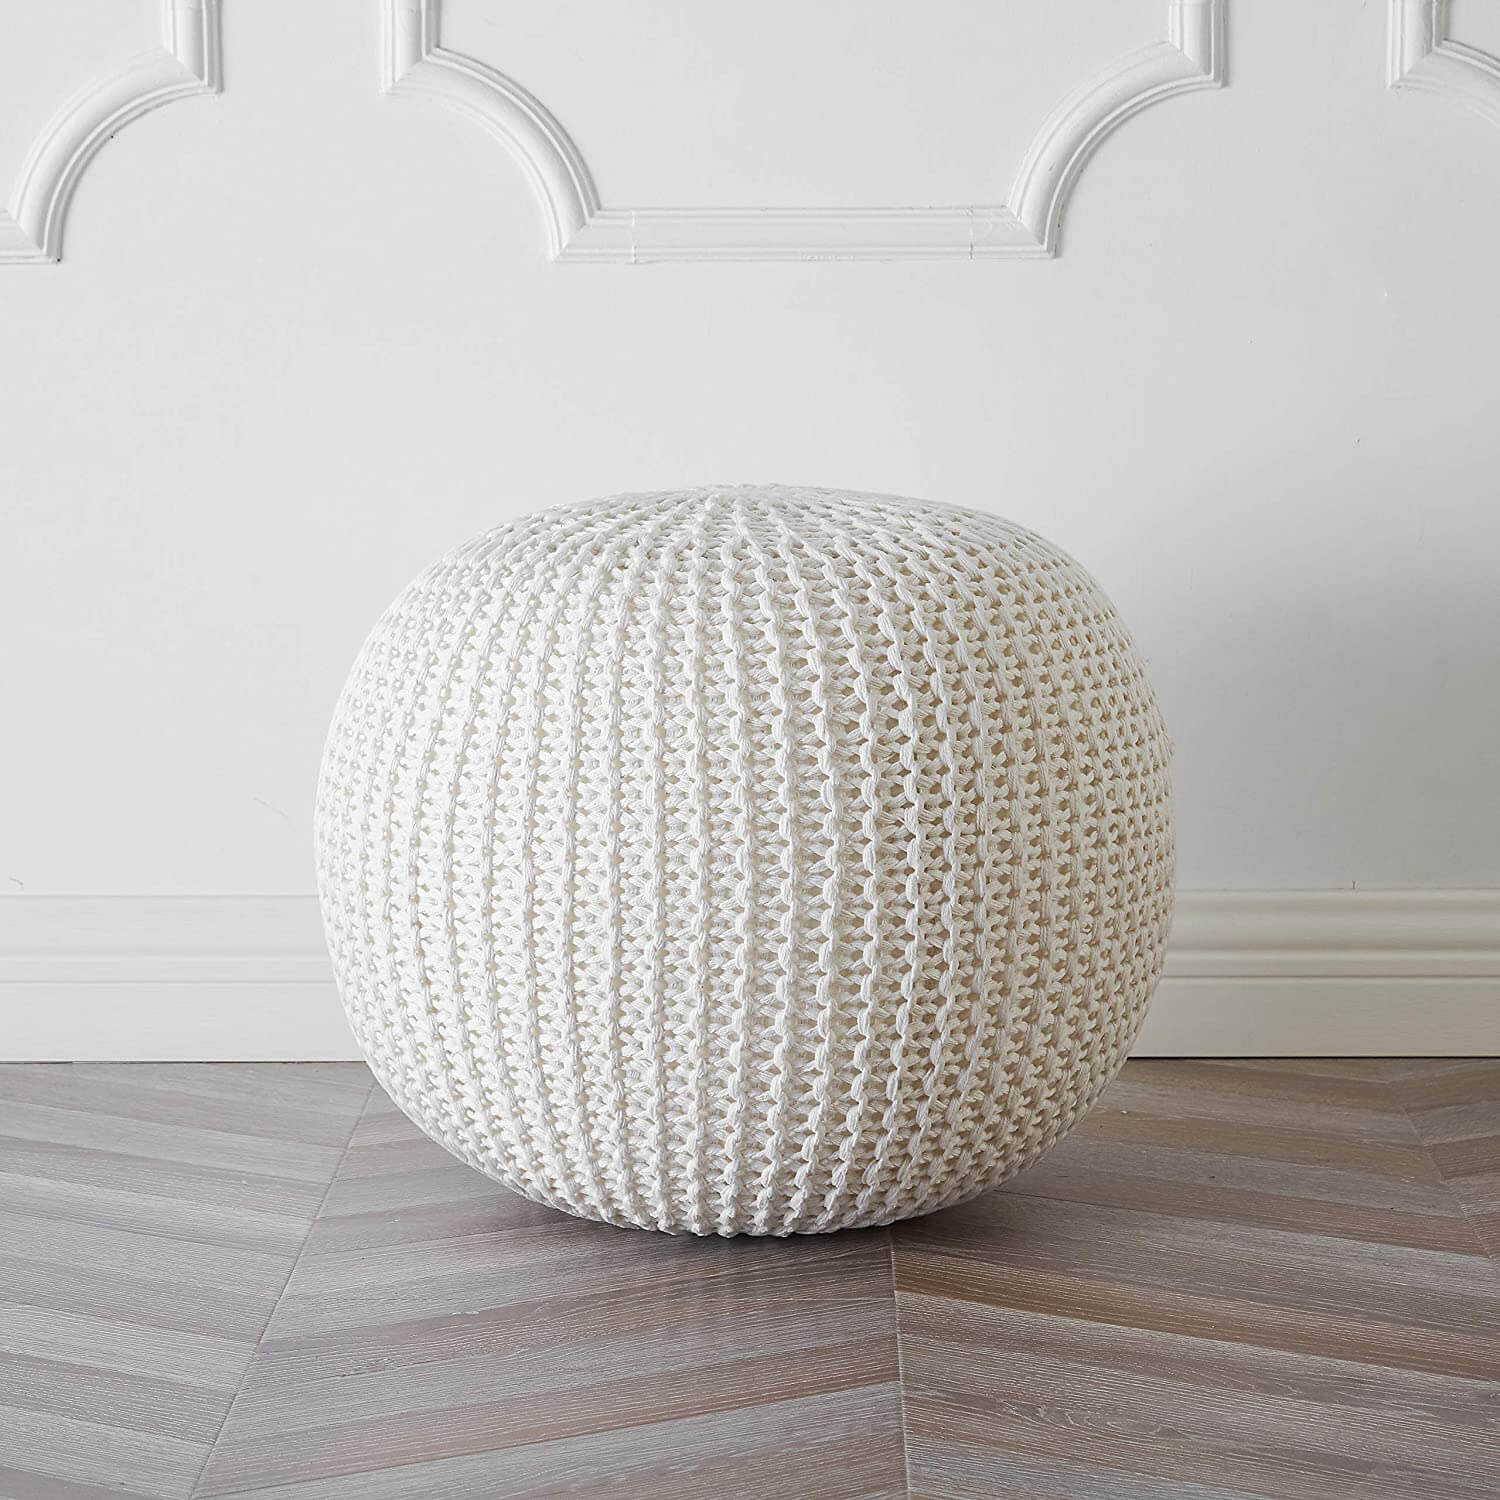 Pouf for Bedroom